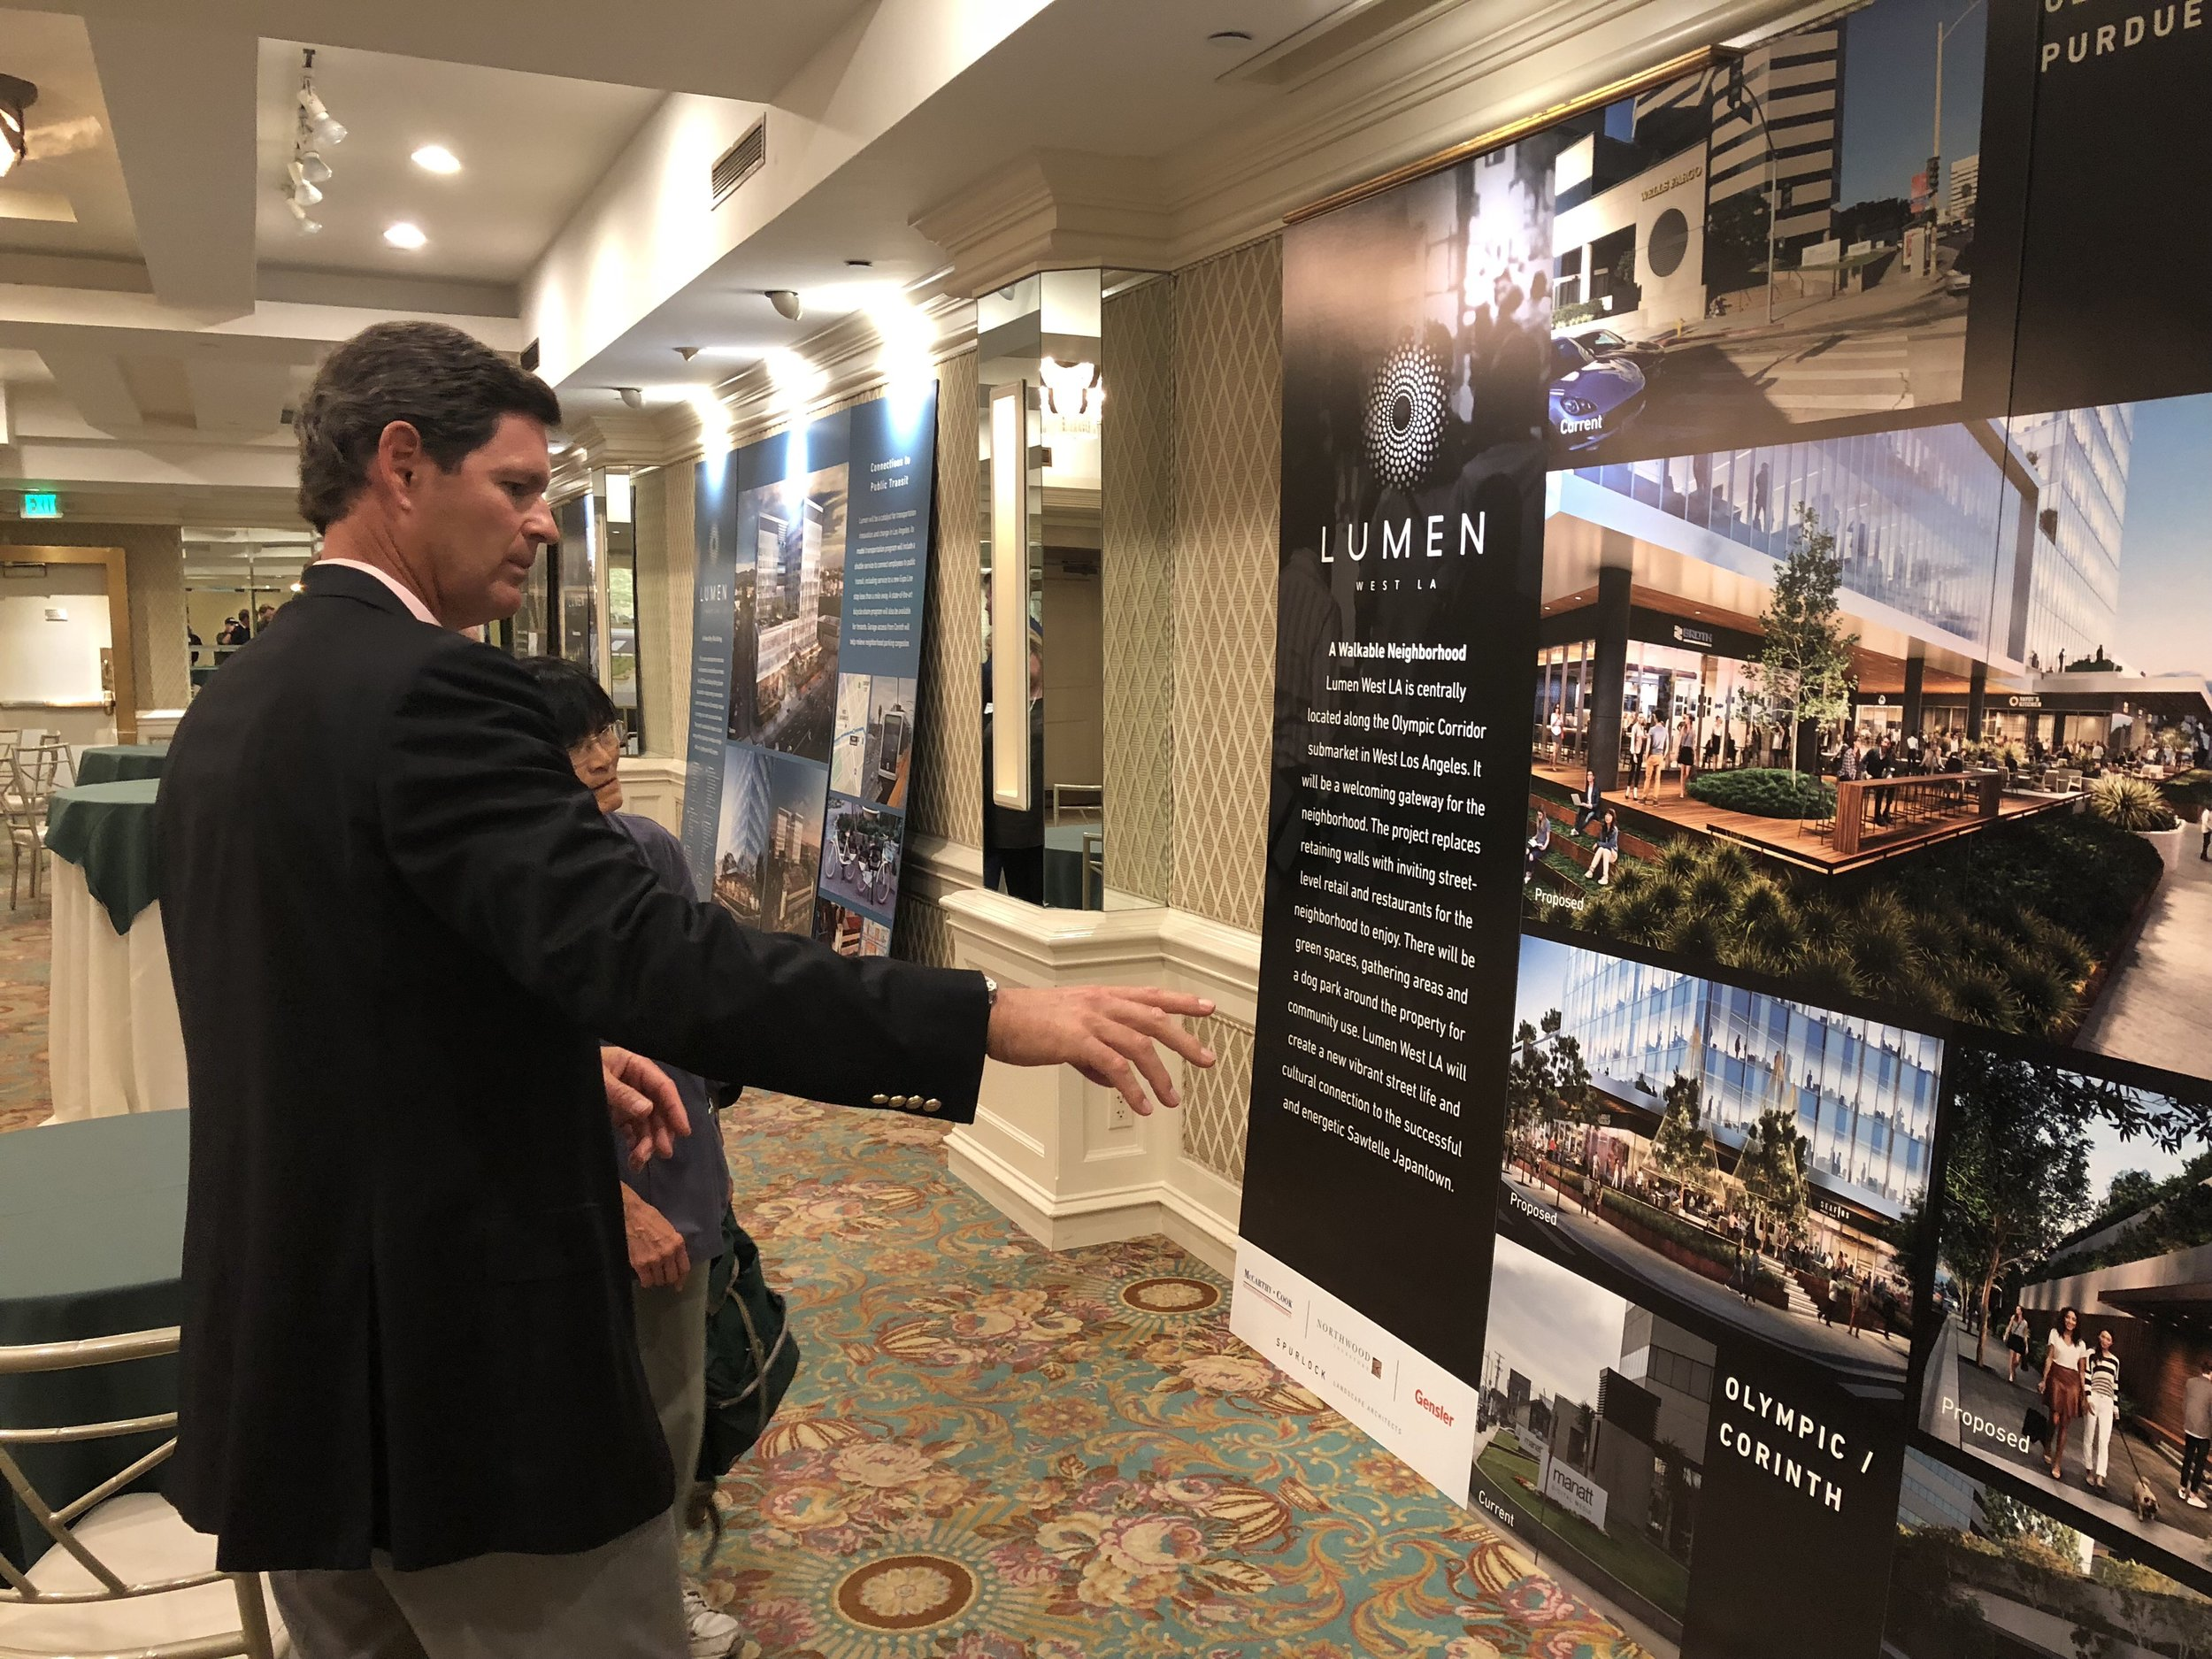 Developer Howard Cook points out details on the giant renders during the Trident / Lumen open house on Tuesday. The project will feature open floor plan offices, retail, and restaurants. The developers intend to find two large tenants to occupy the office spaces in the building.